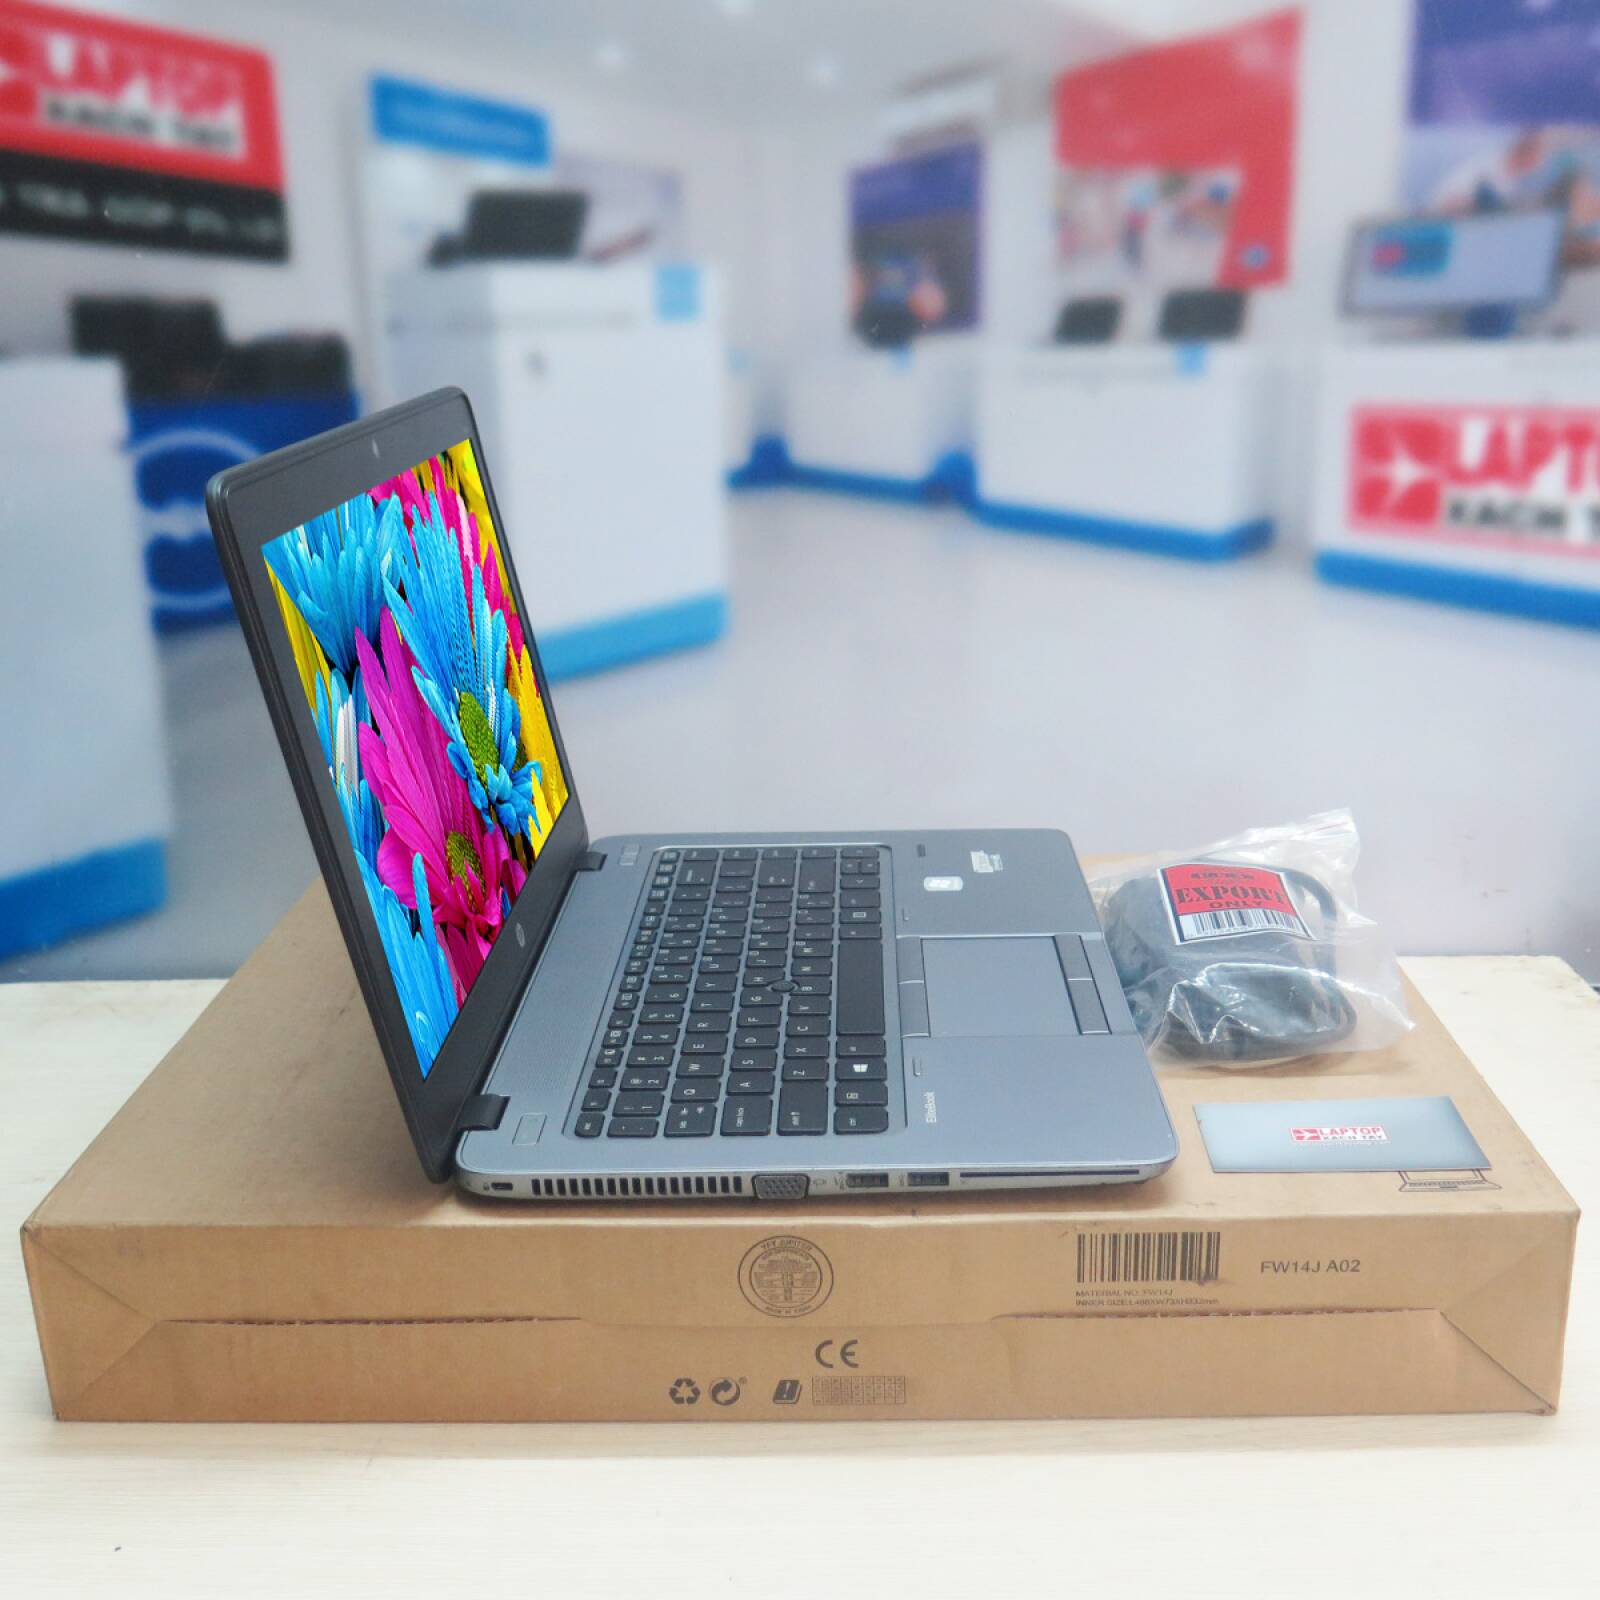 HP elitebook 840 G1 tại Laptopxachtayshop.com